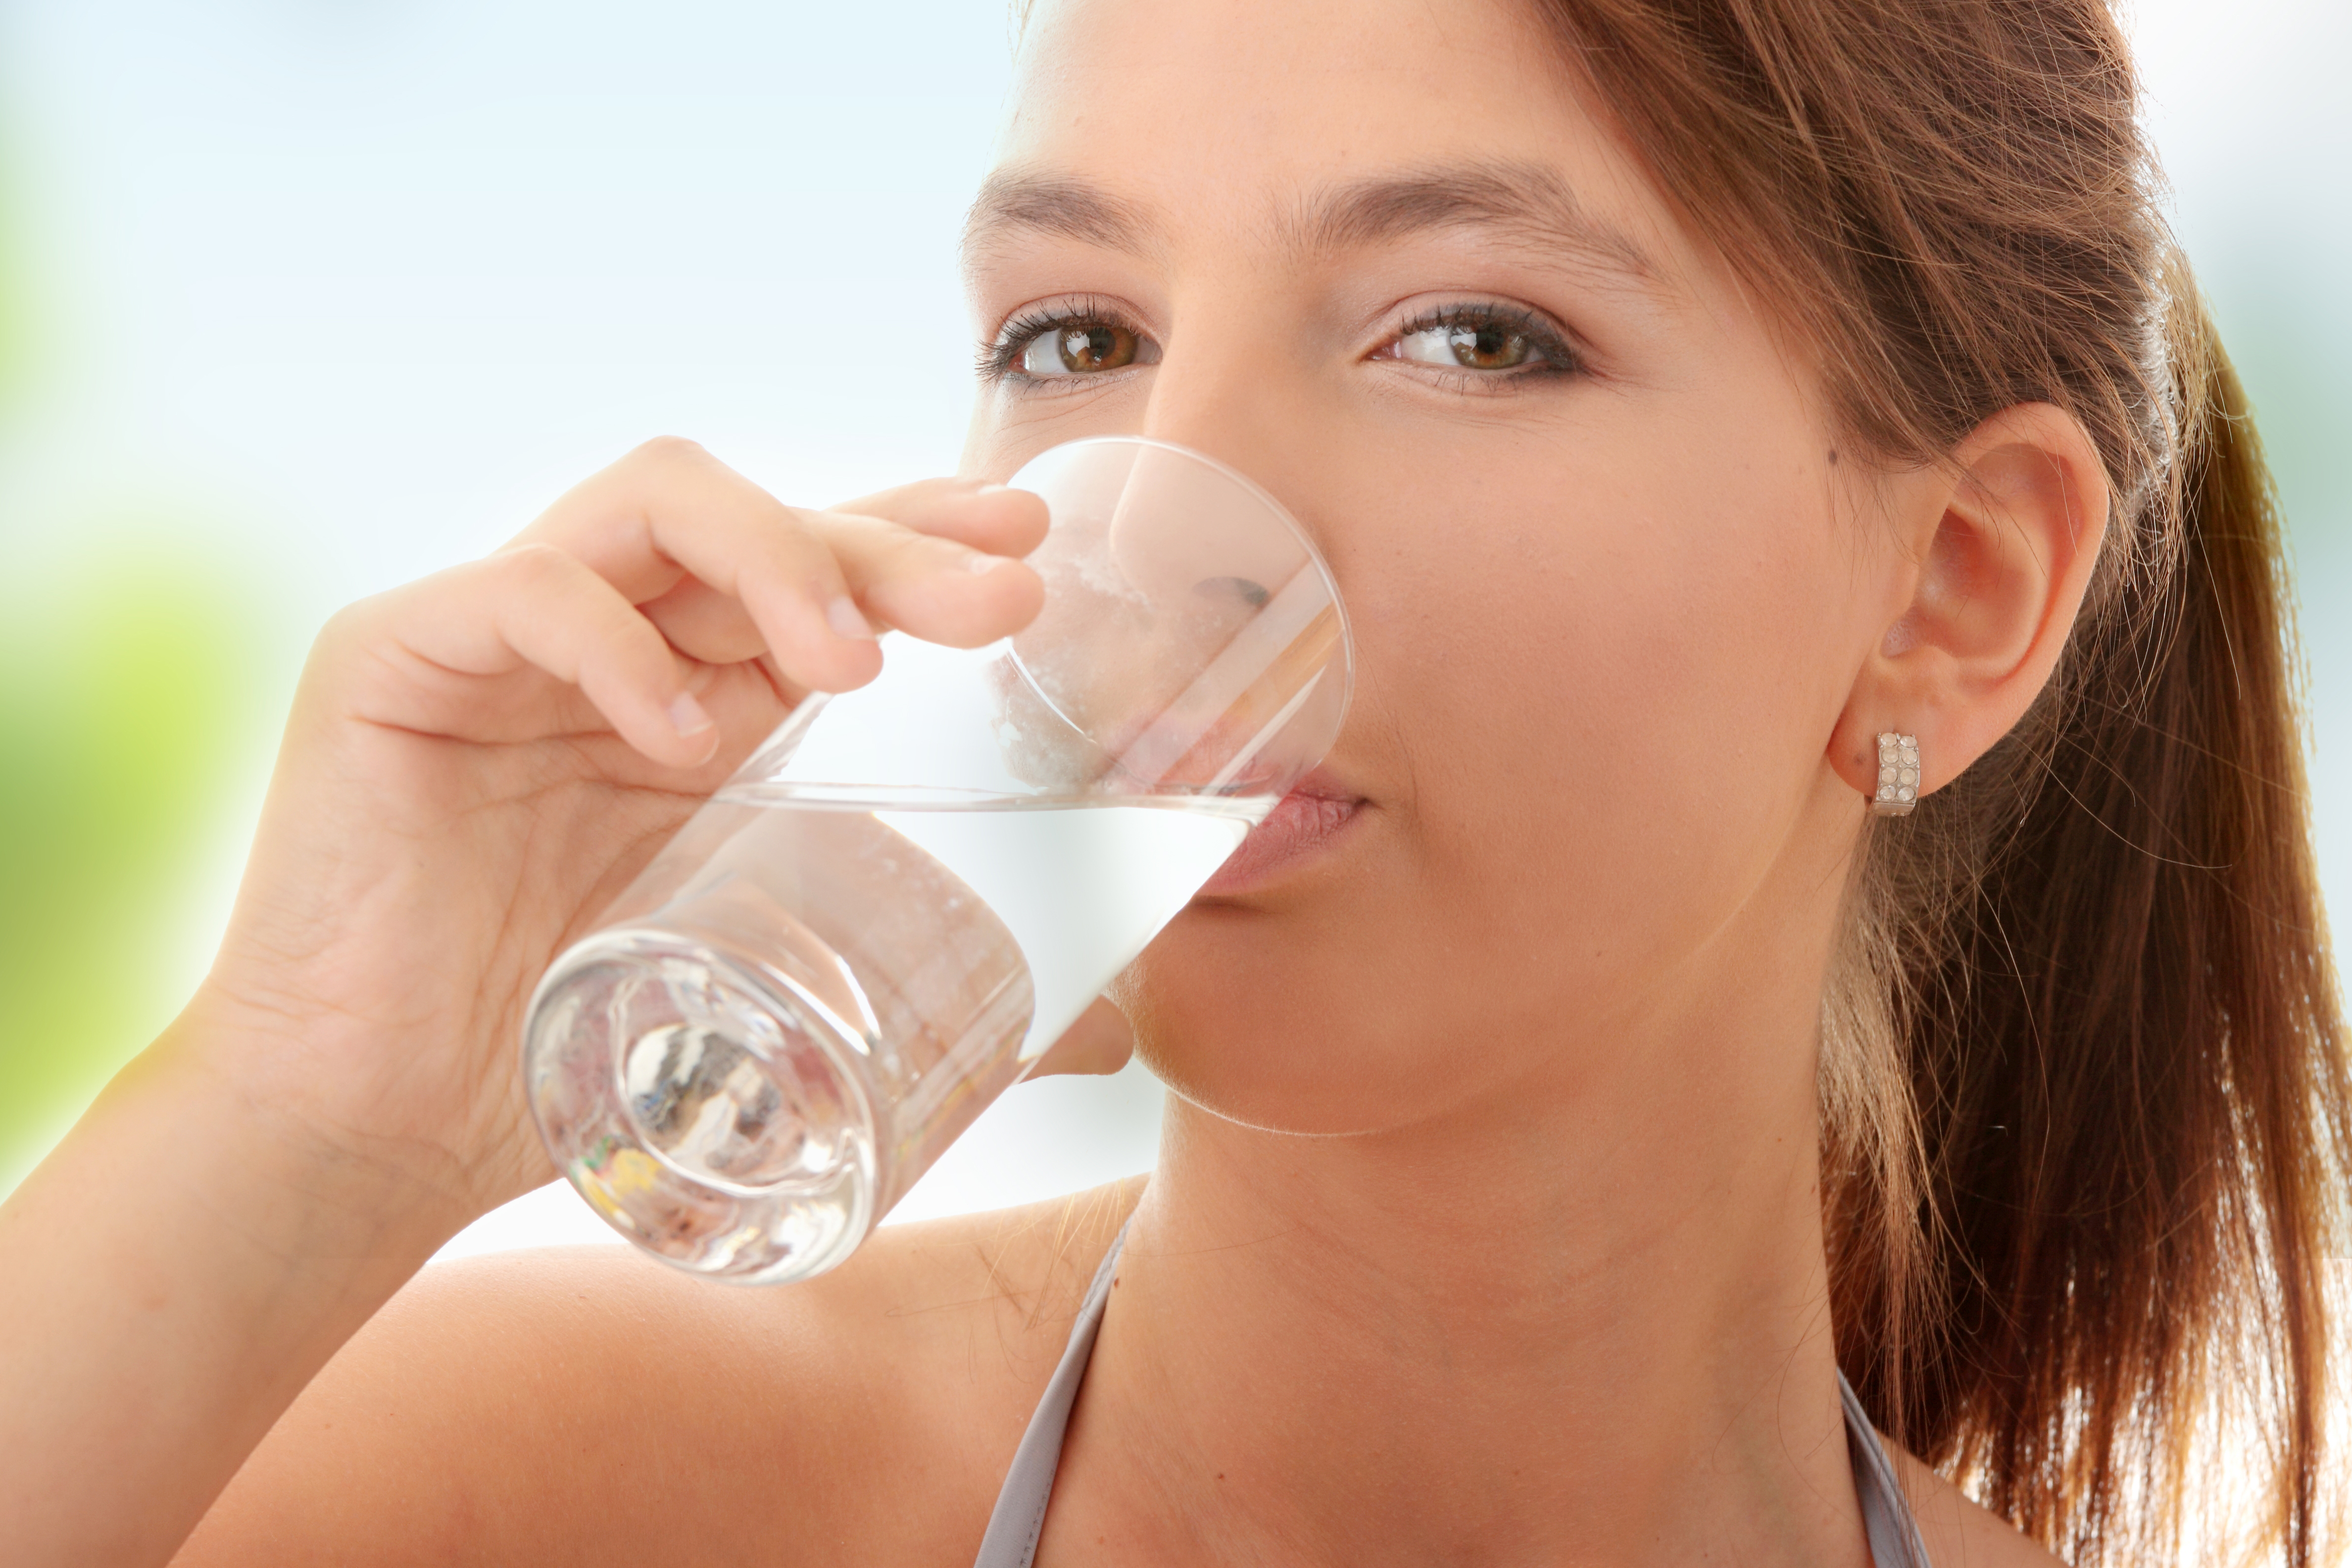 Drink Water to Keep Your Stomach Full